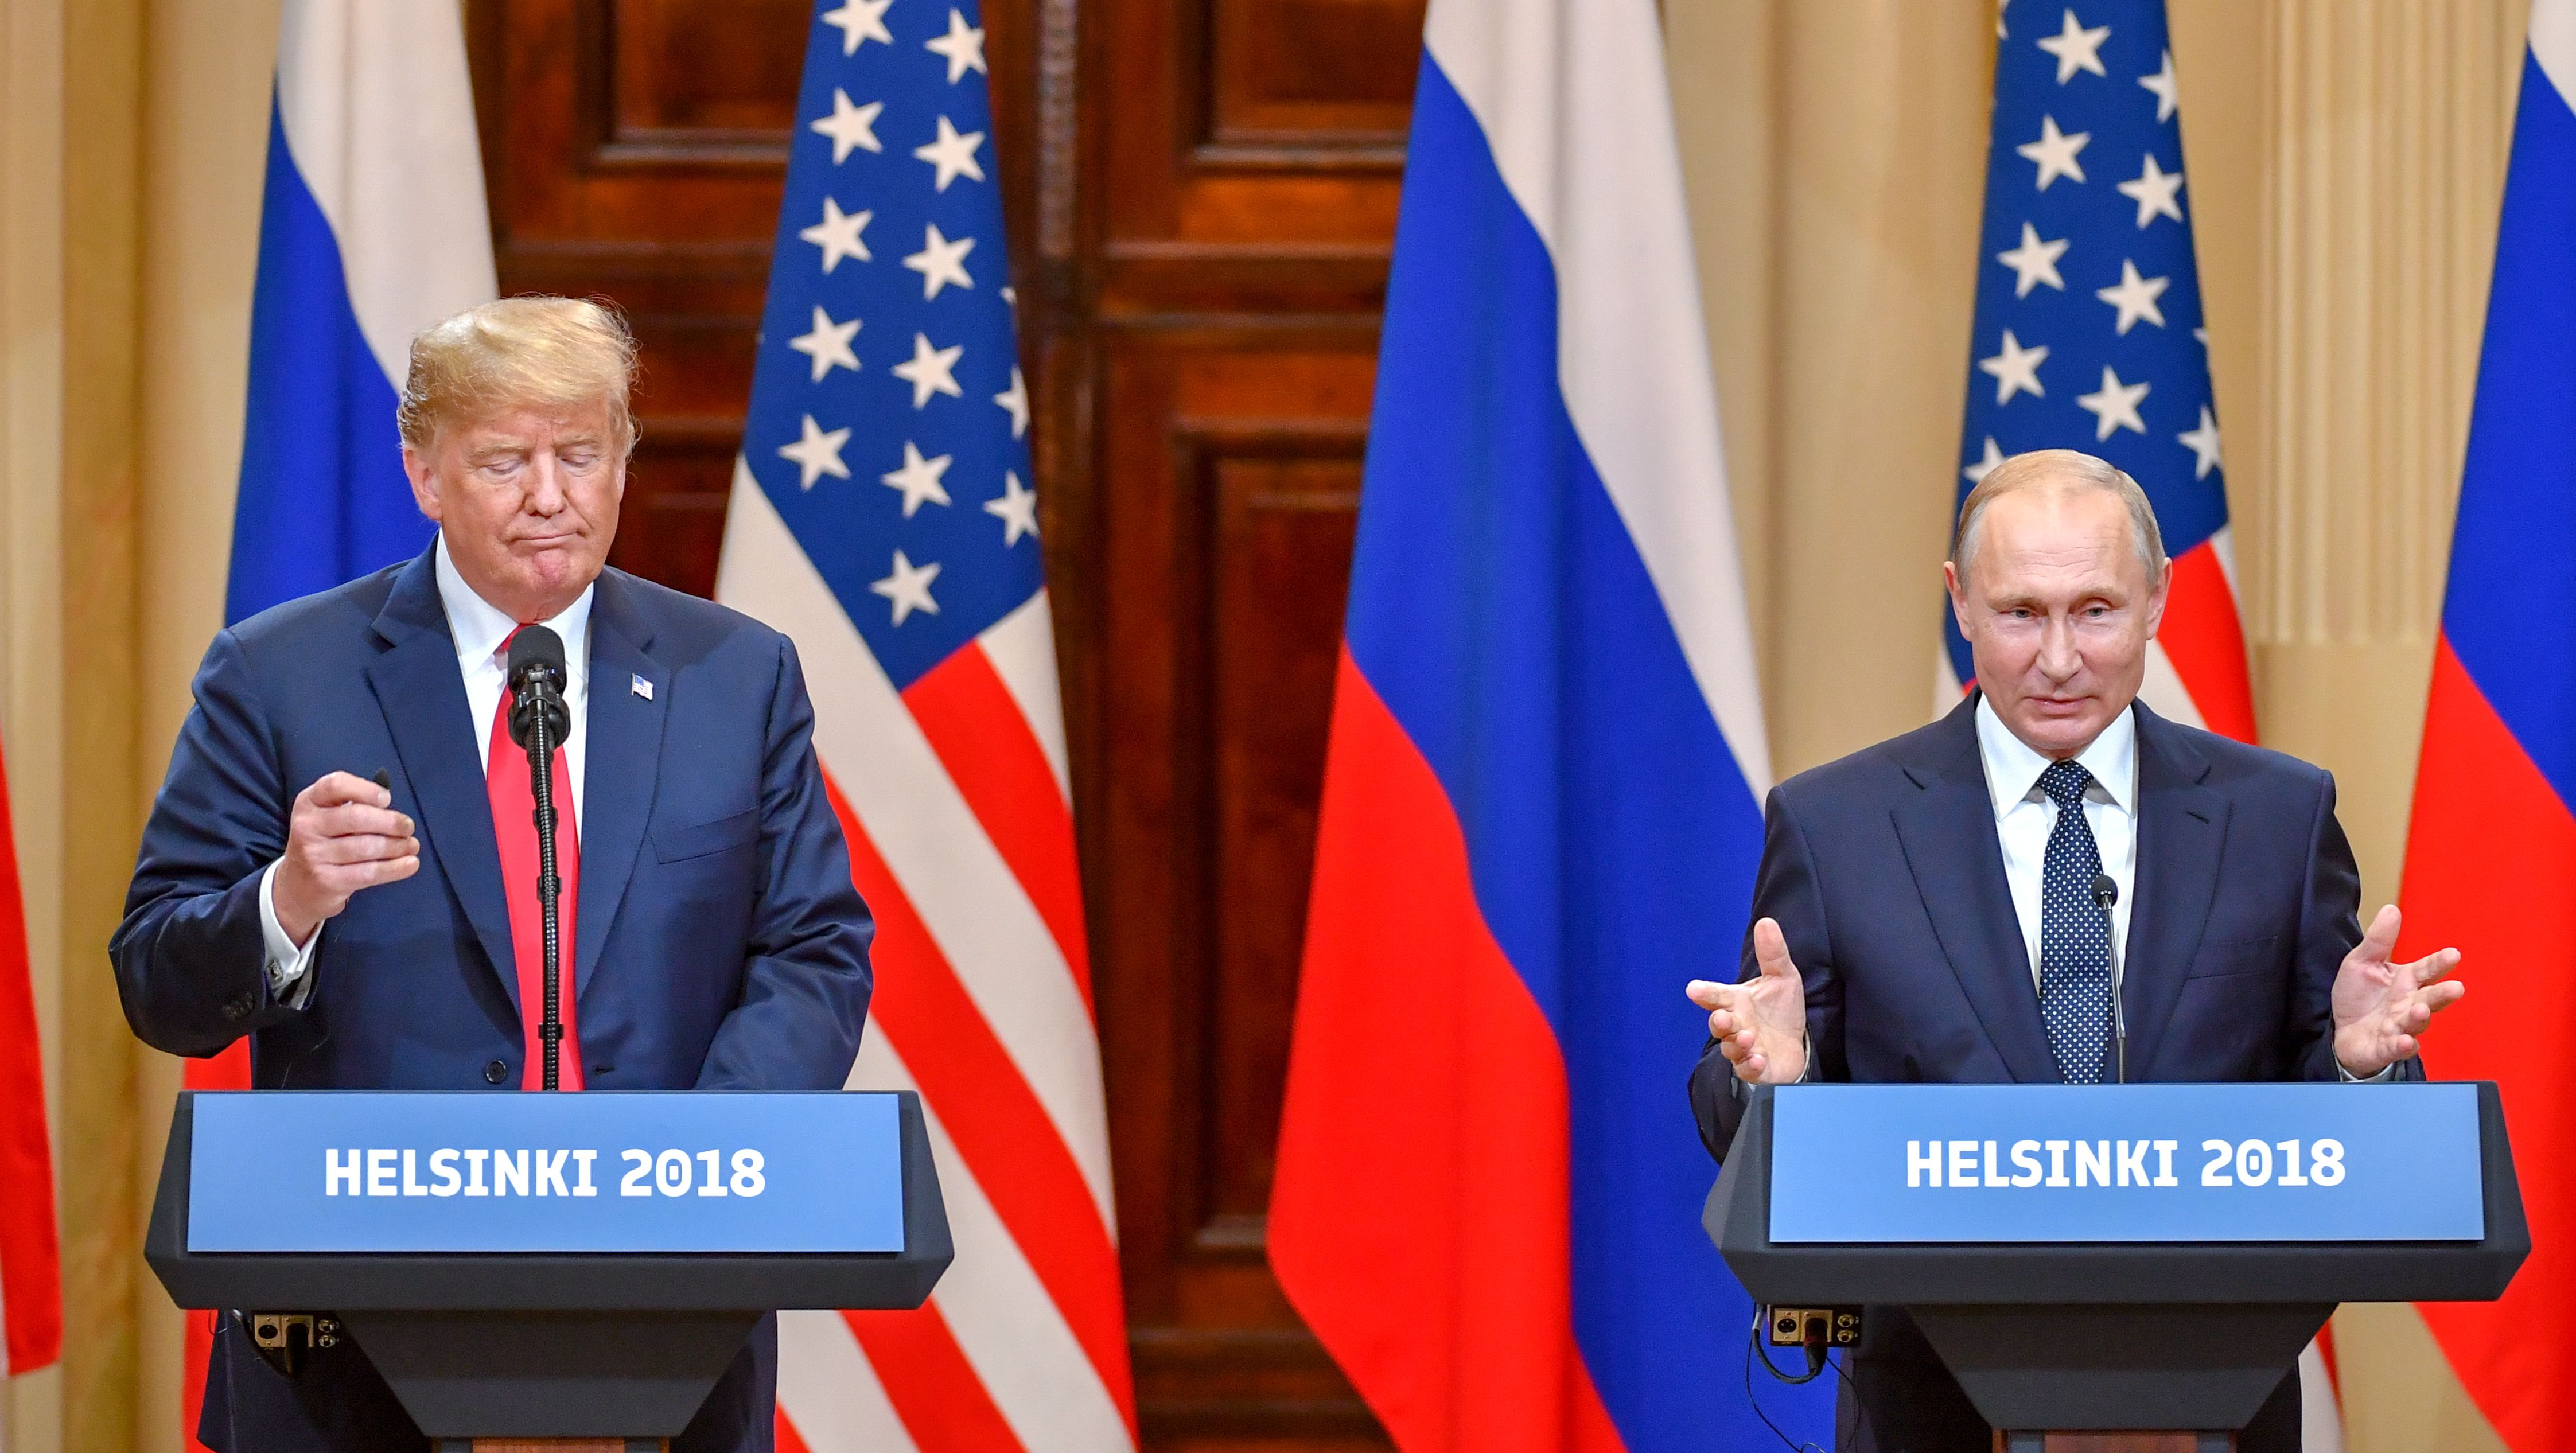 A Conservative Magazine Blasted Trump For Meeting With Putin